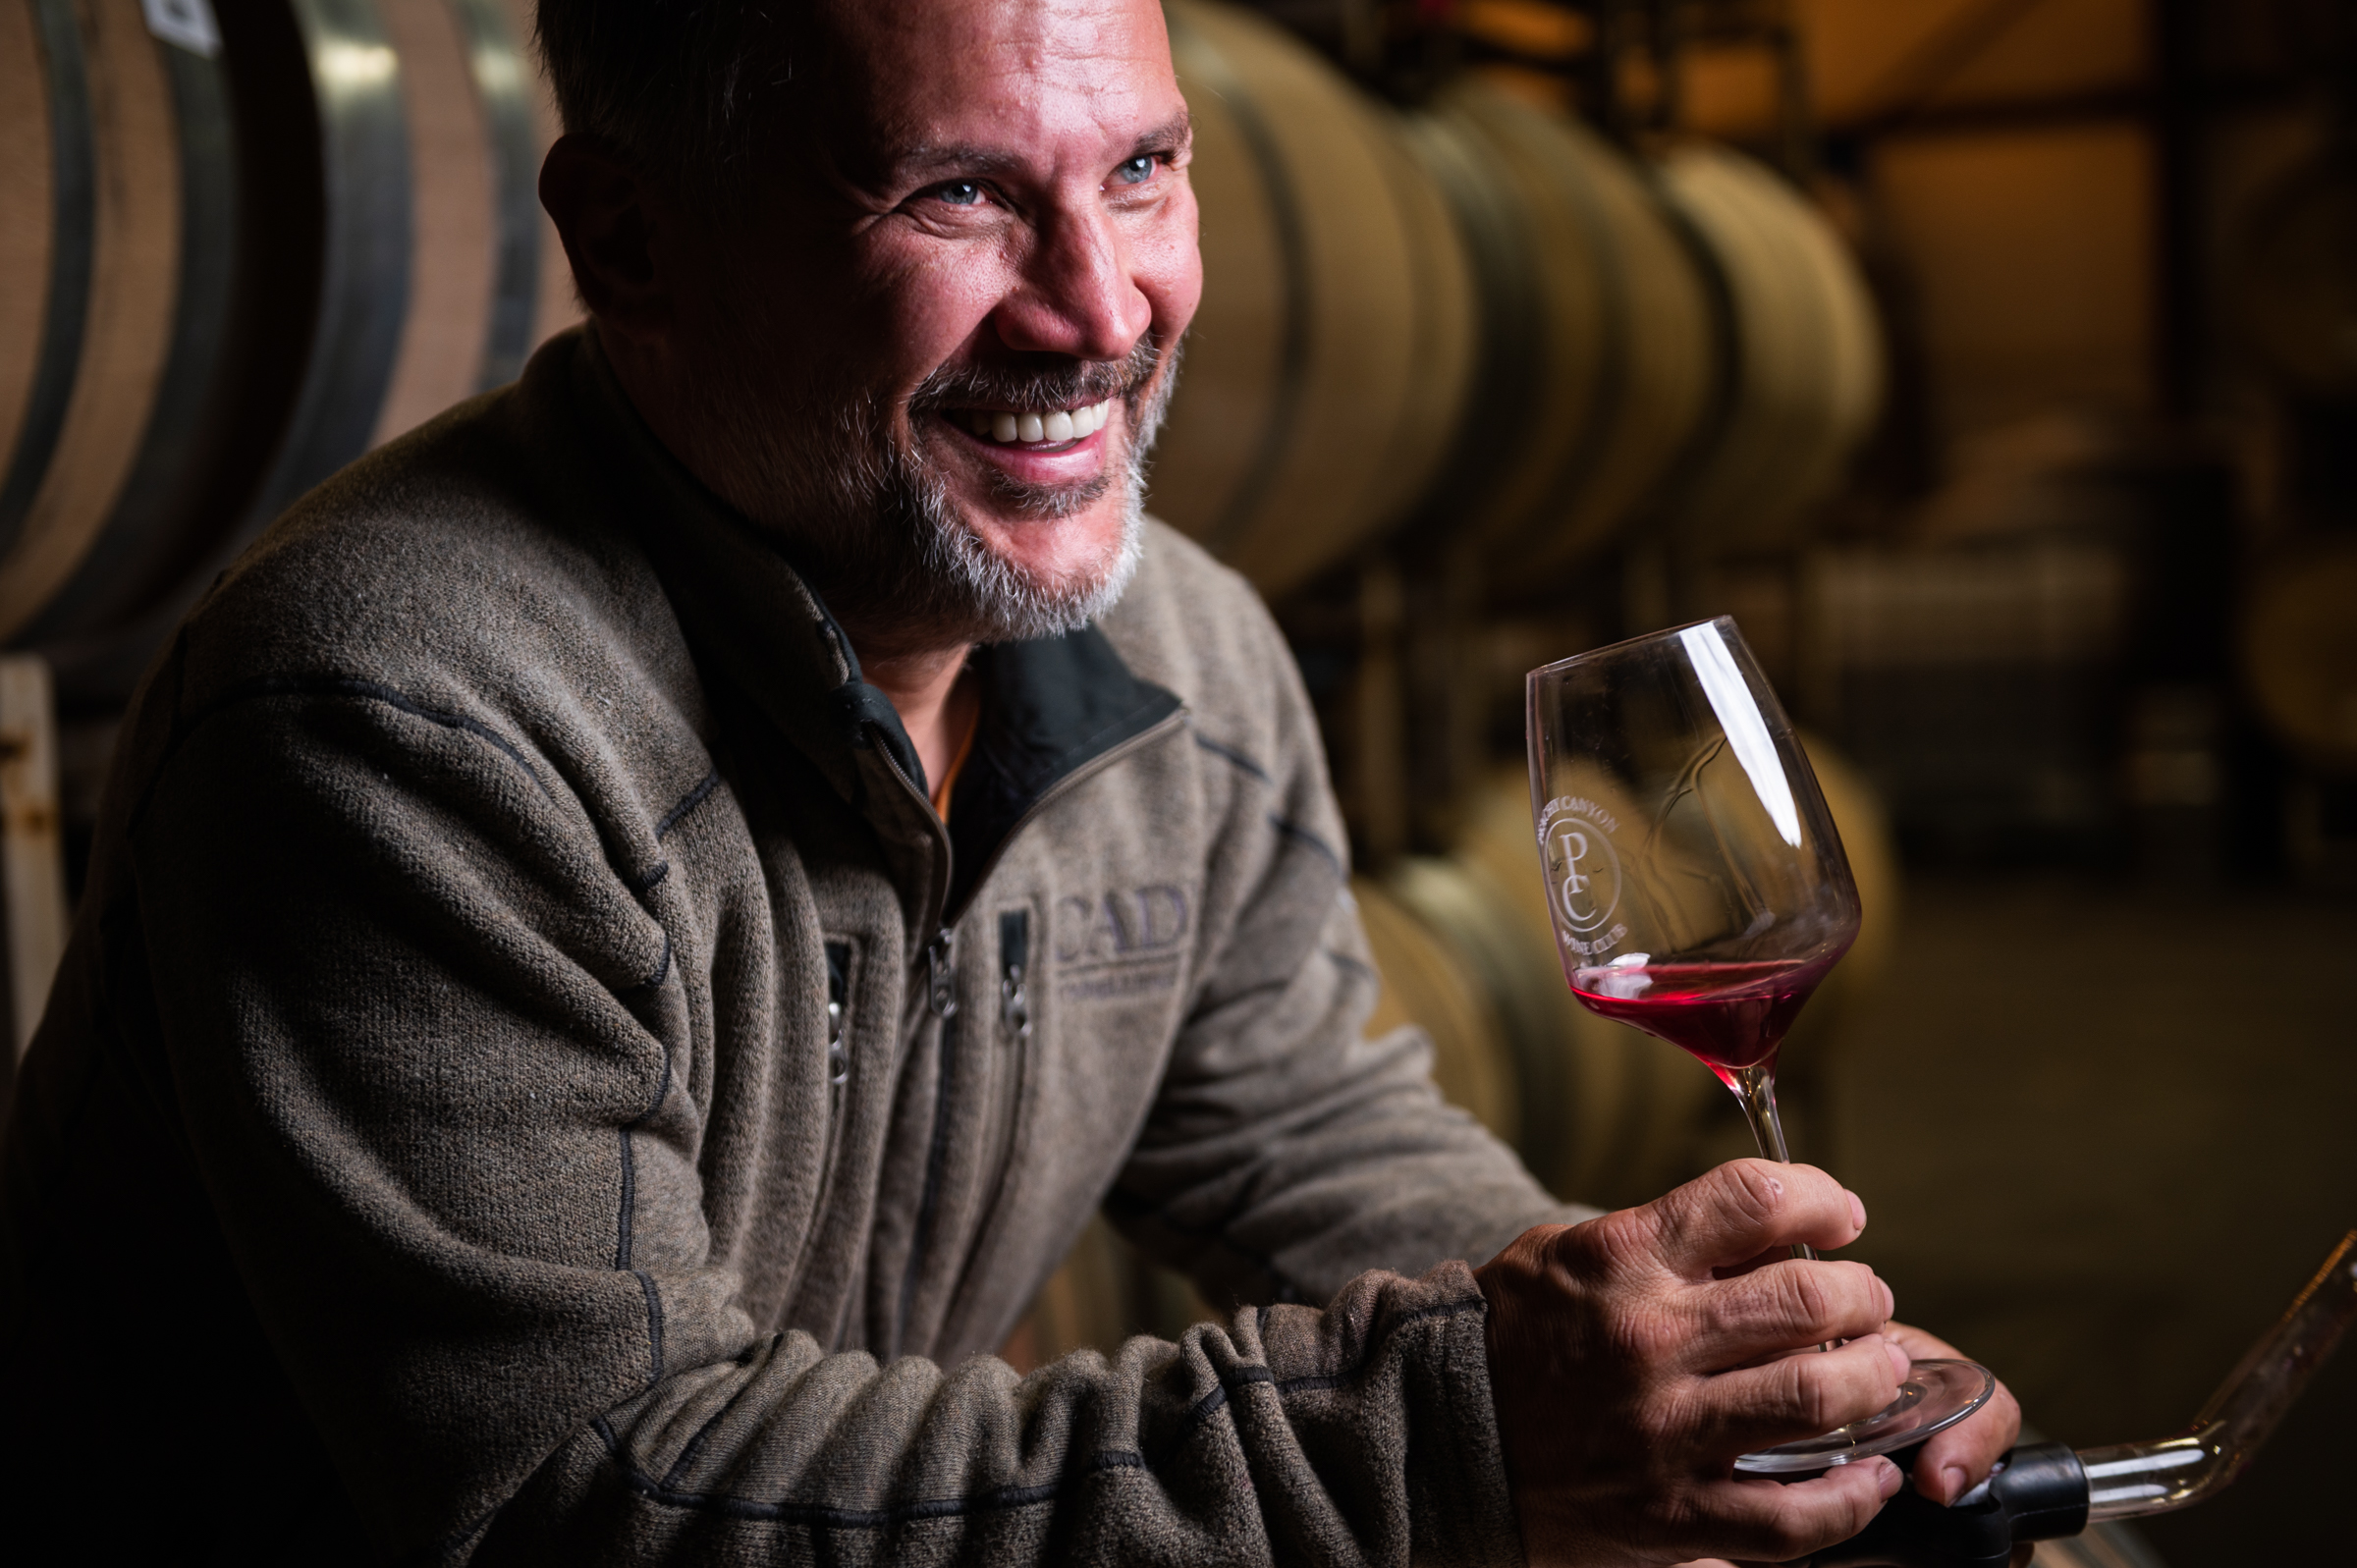 Portrait of Rob Henson, winemaker at Peachy Canyon Winery